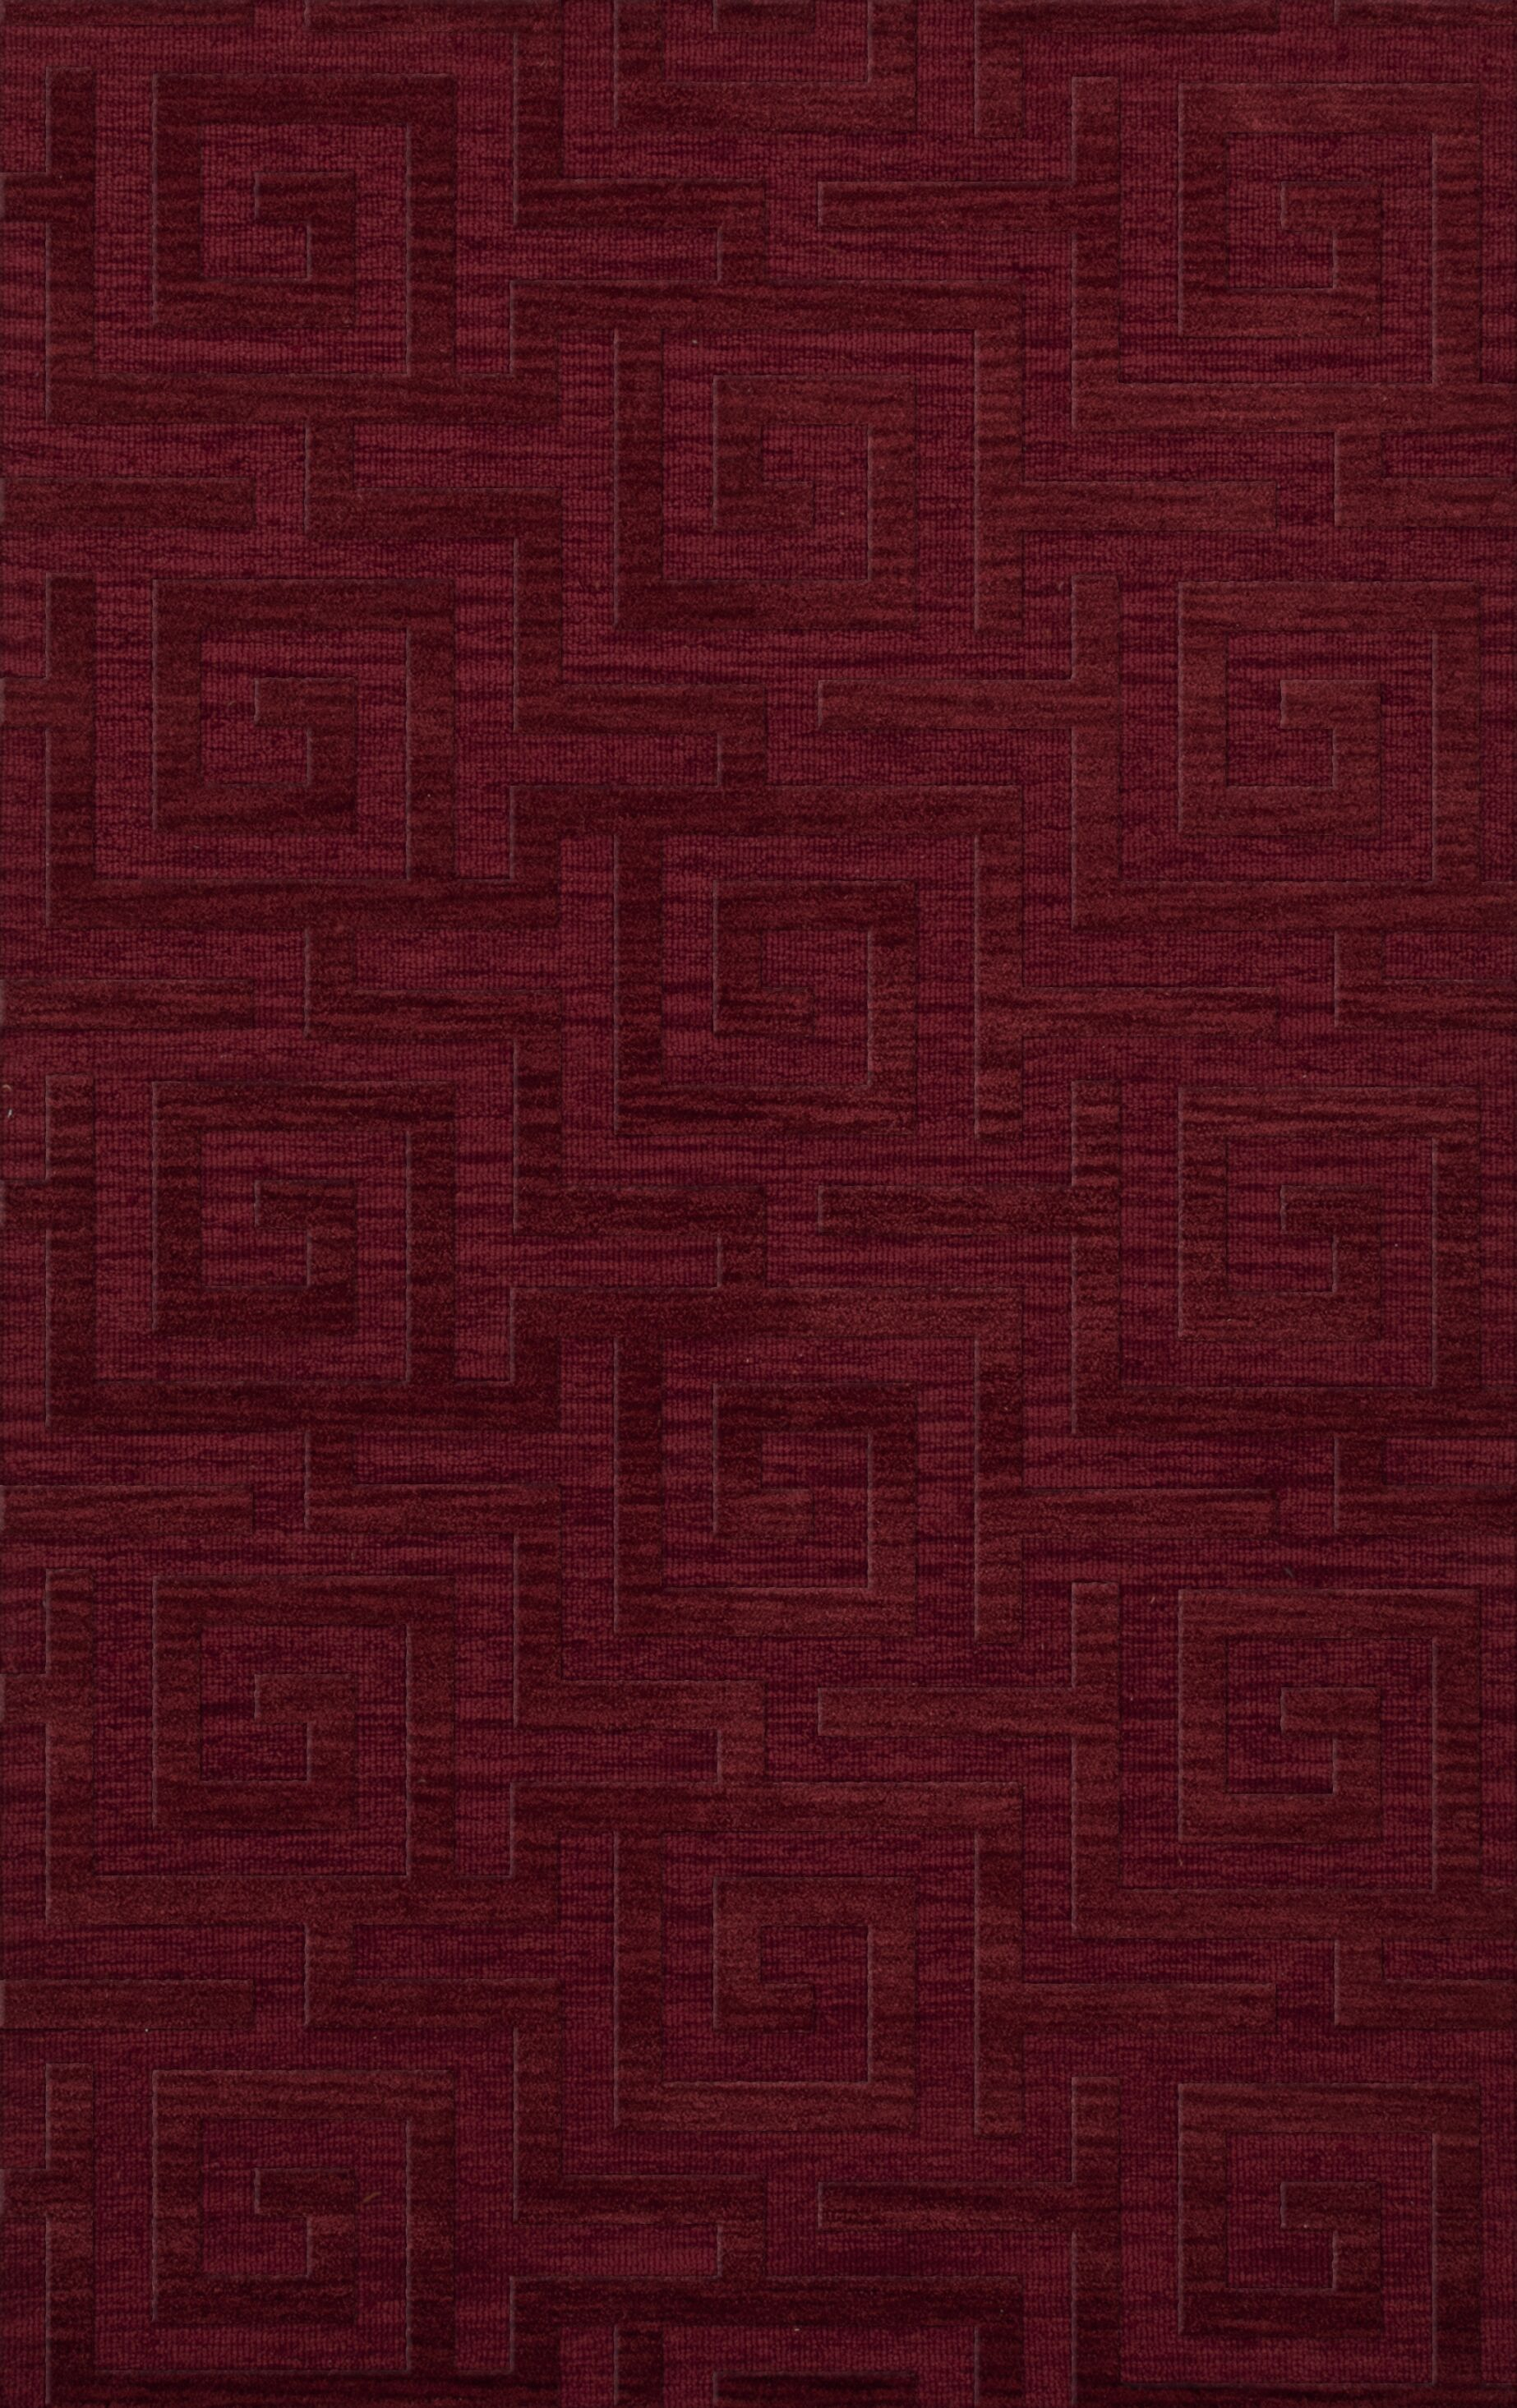 Dover Tufted Wool Rich Red Area Rug Rug Size: Rectangle 9' x 12'